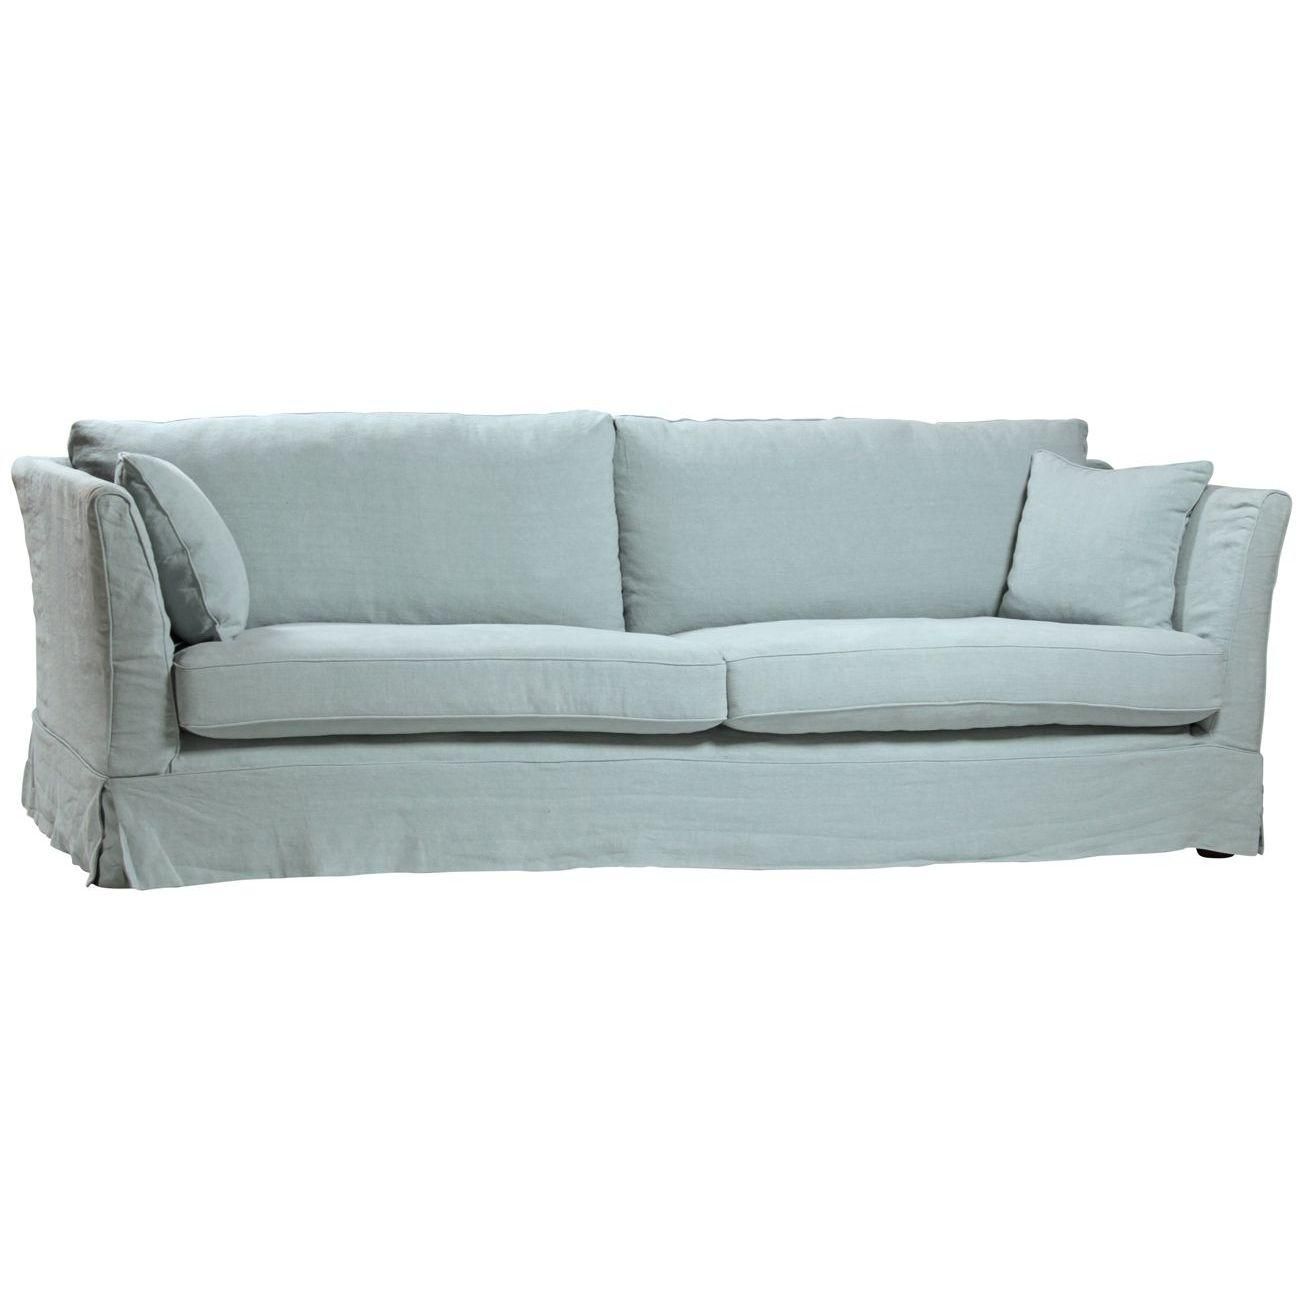 Adelle Sofa By Dovetail Furniture For The Home Sofa Linen Sofa